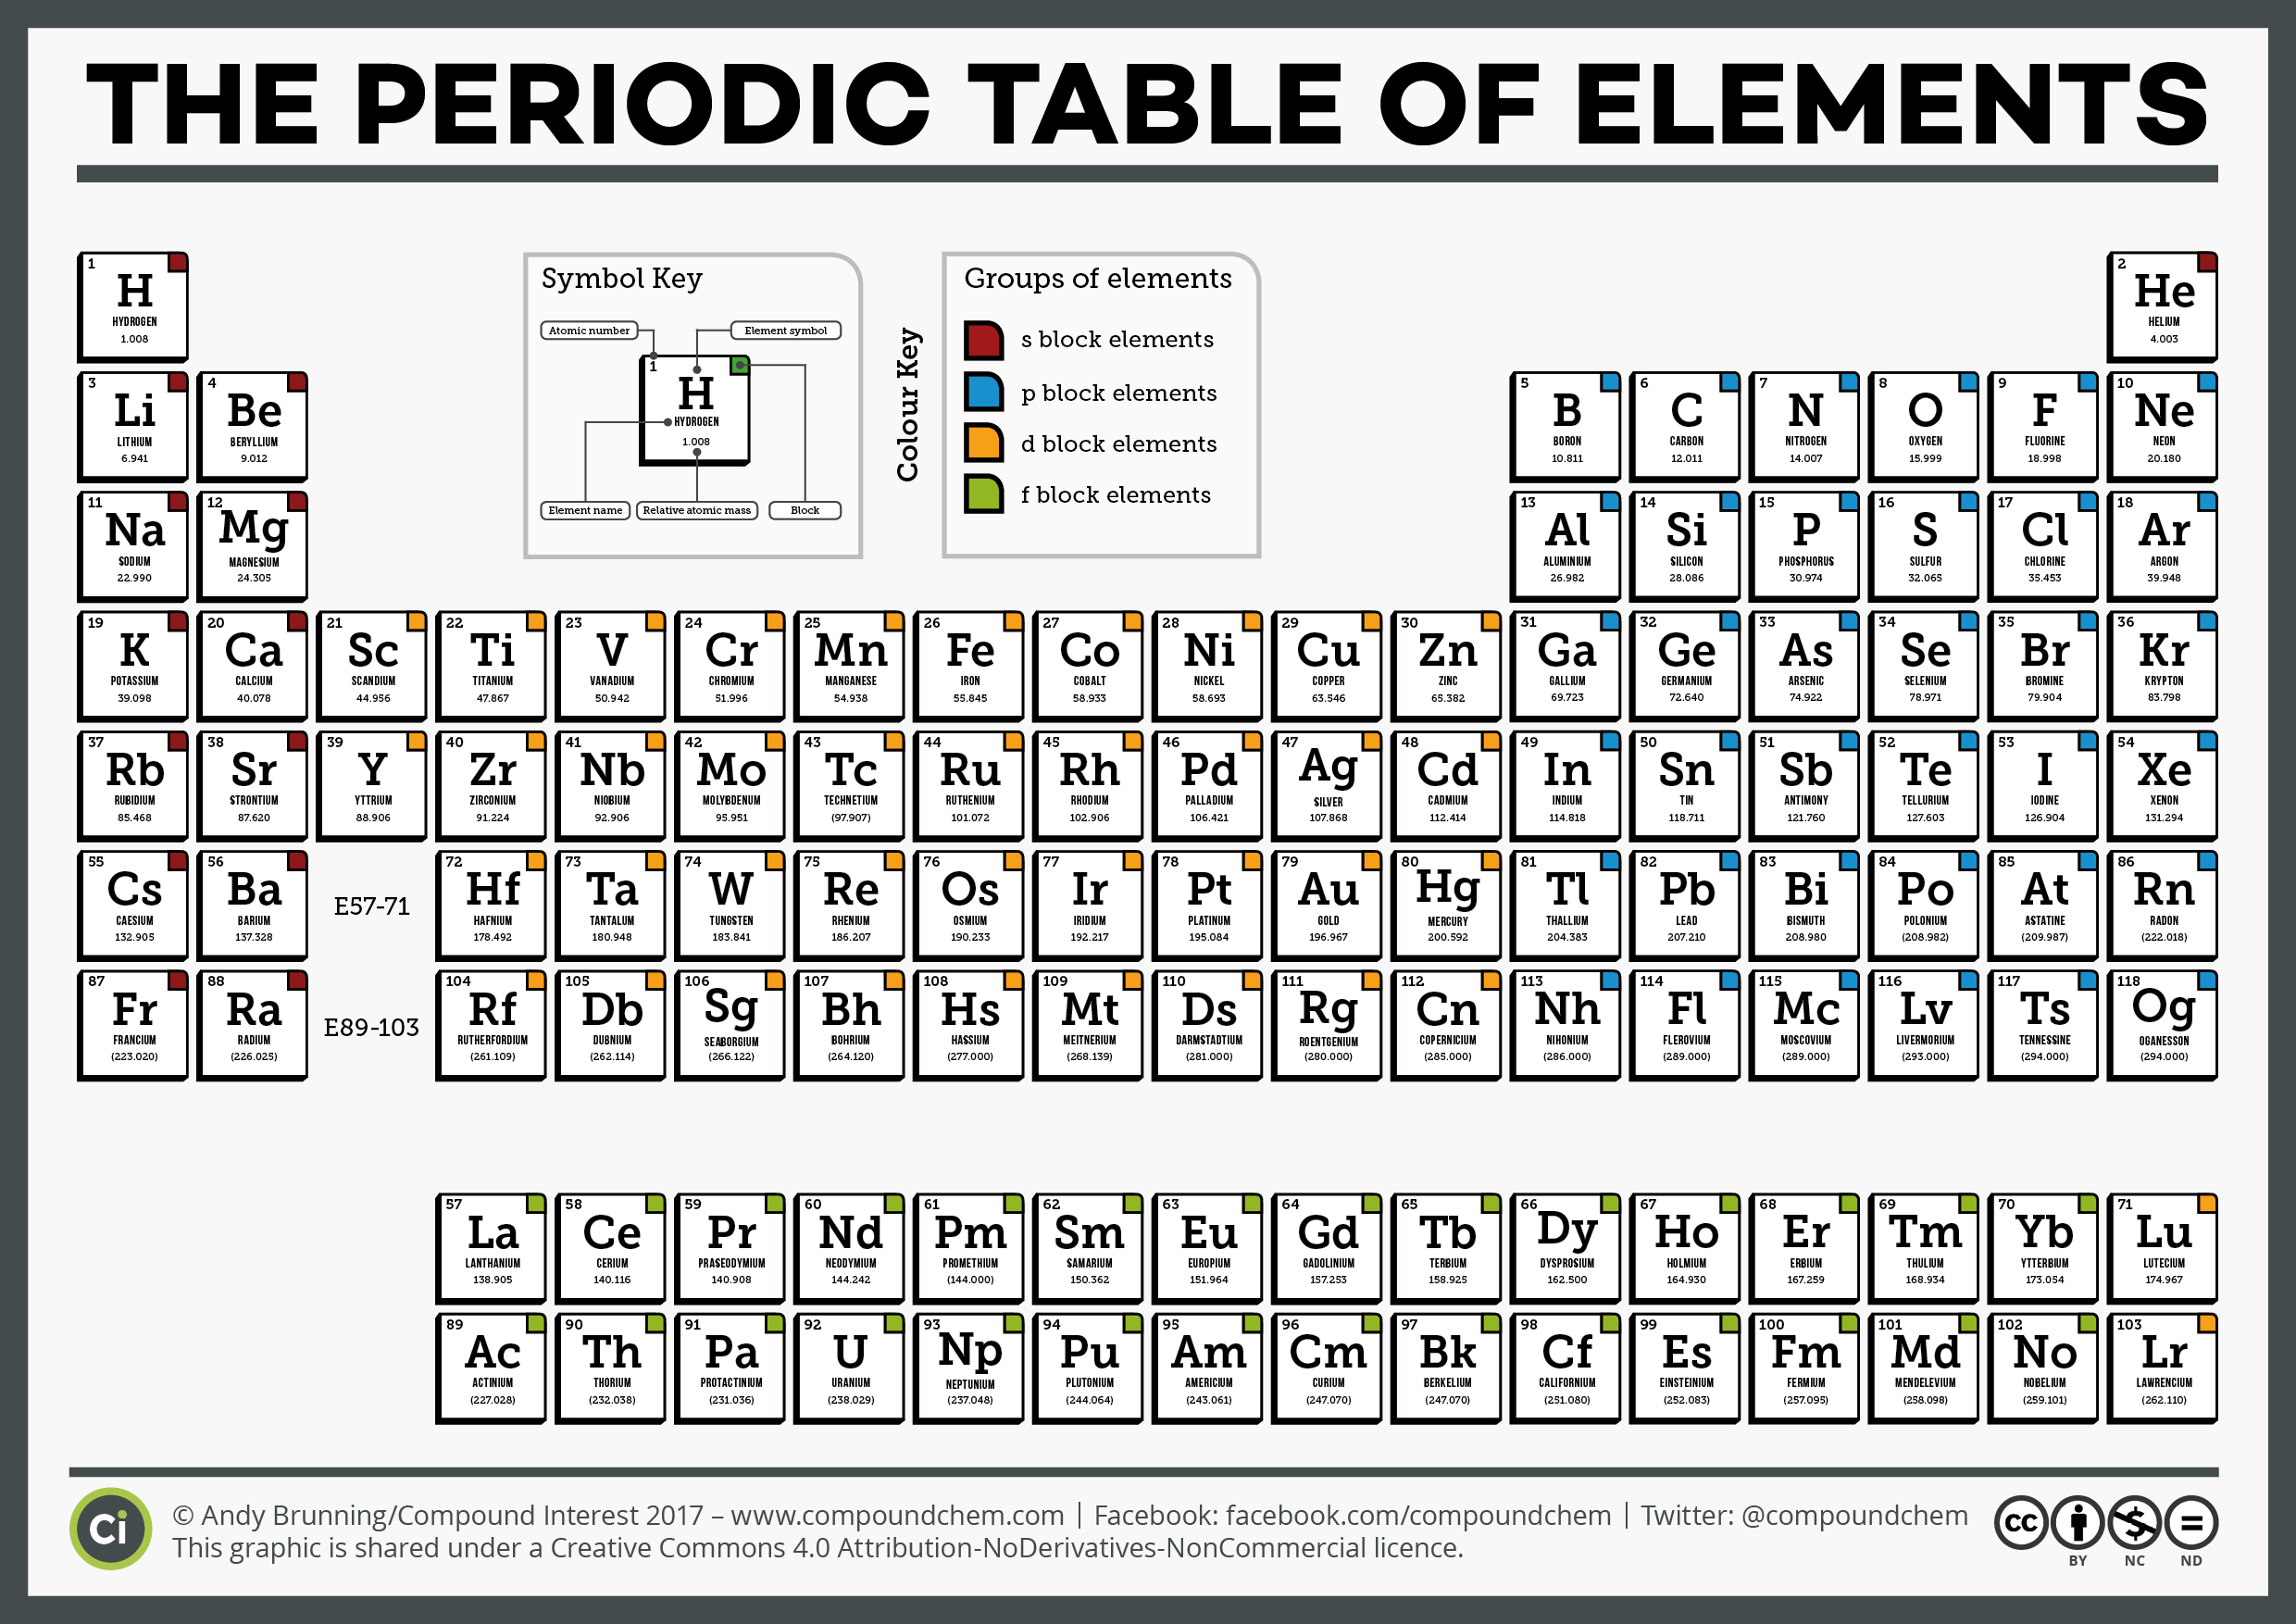 The Complete Periodic Table Of Elements